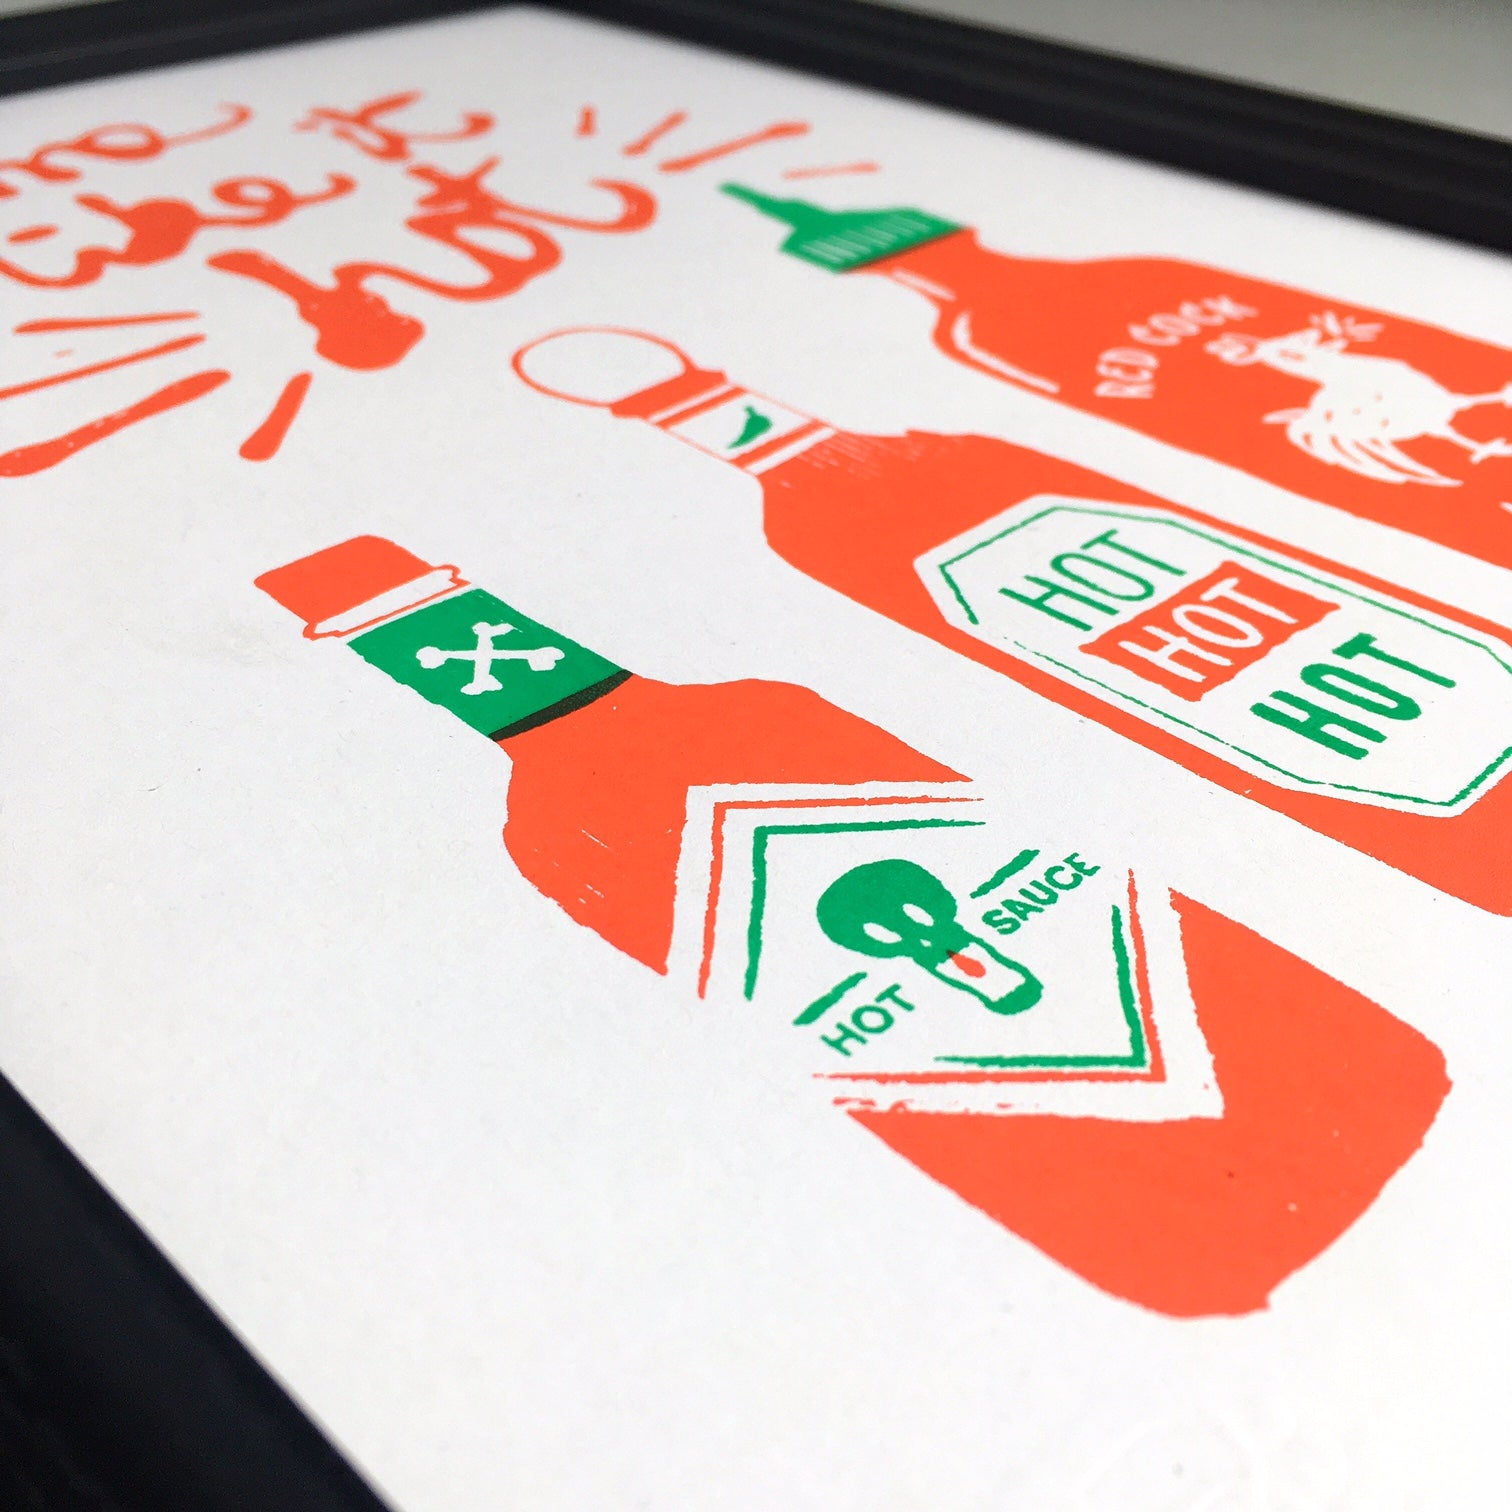 Hot Sauce A4 Screen Print